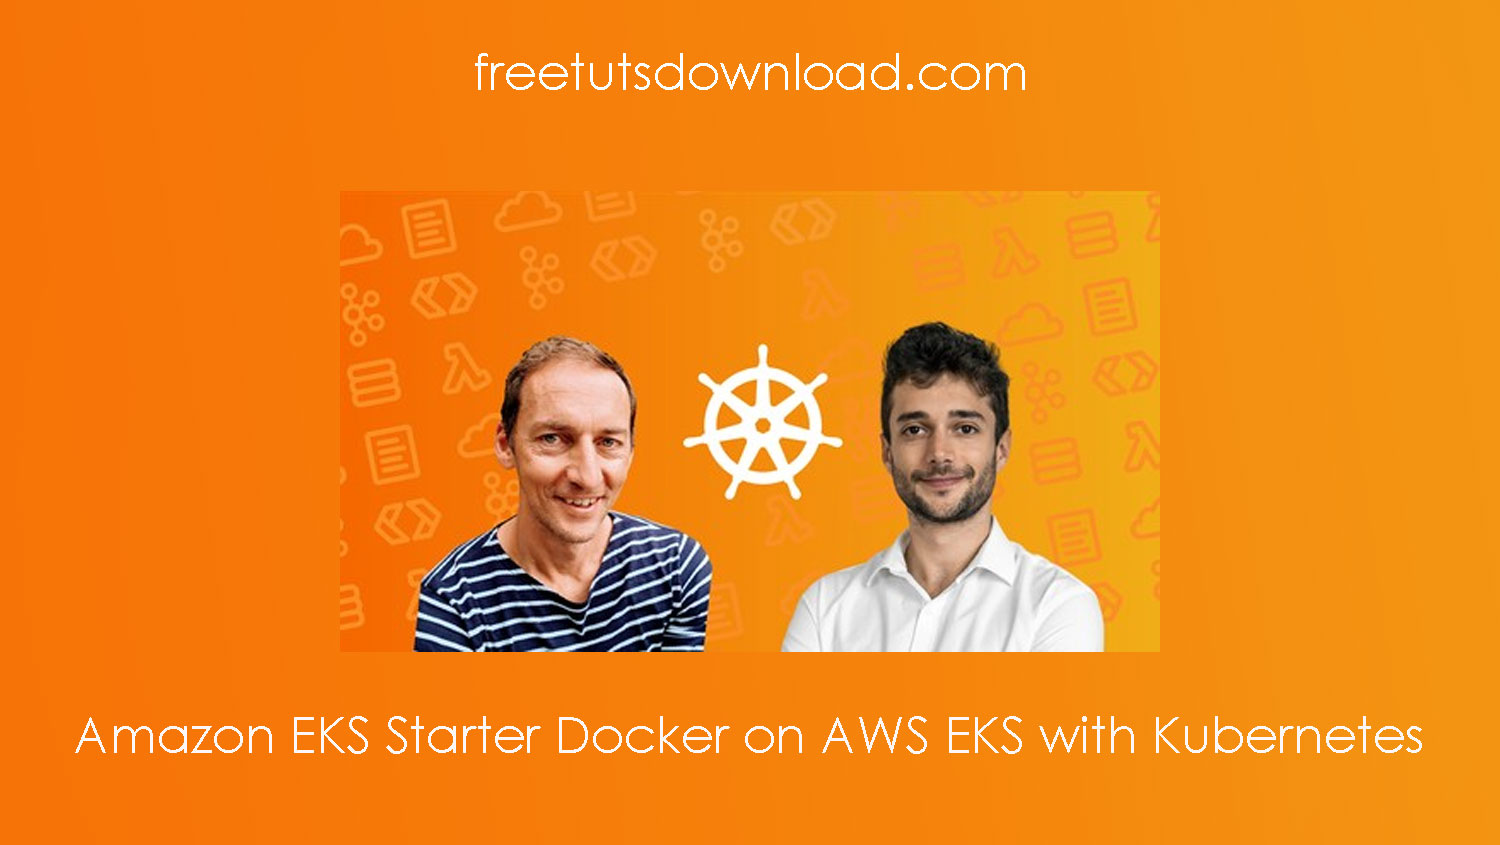 Amazon EKS Starter Docker on AWS EKS with Kubernetes